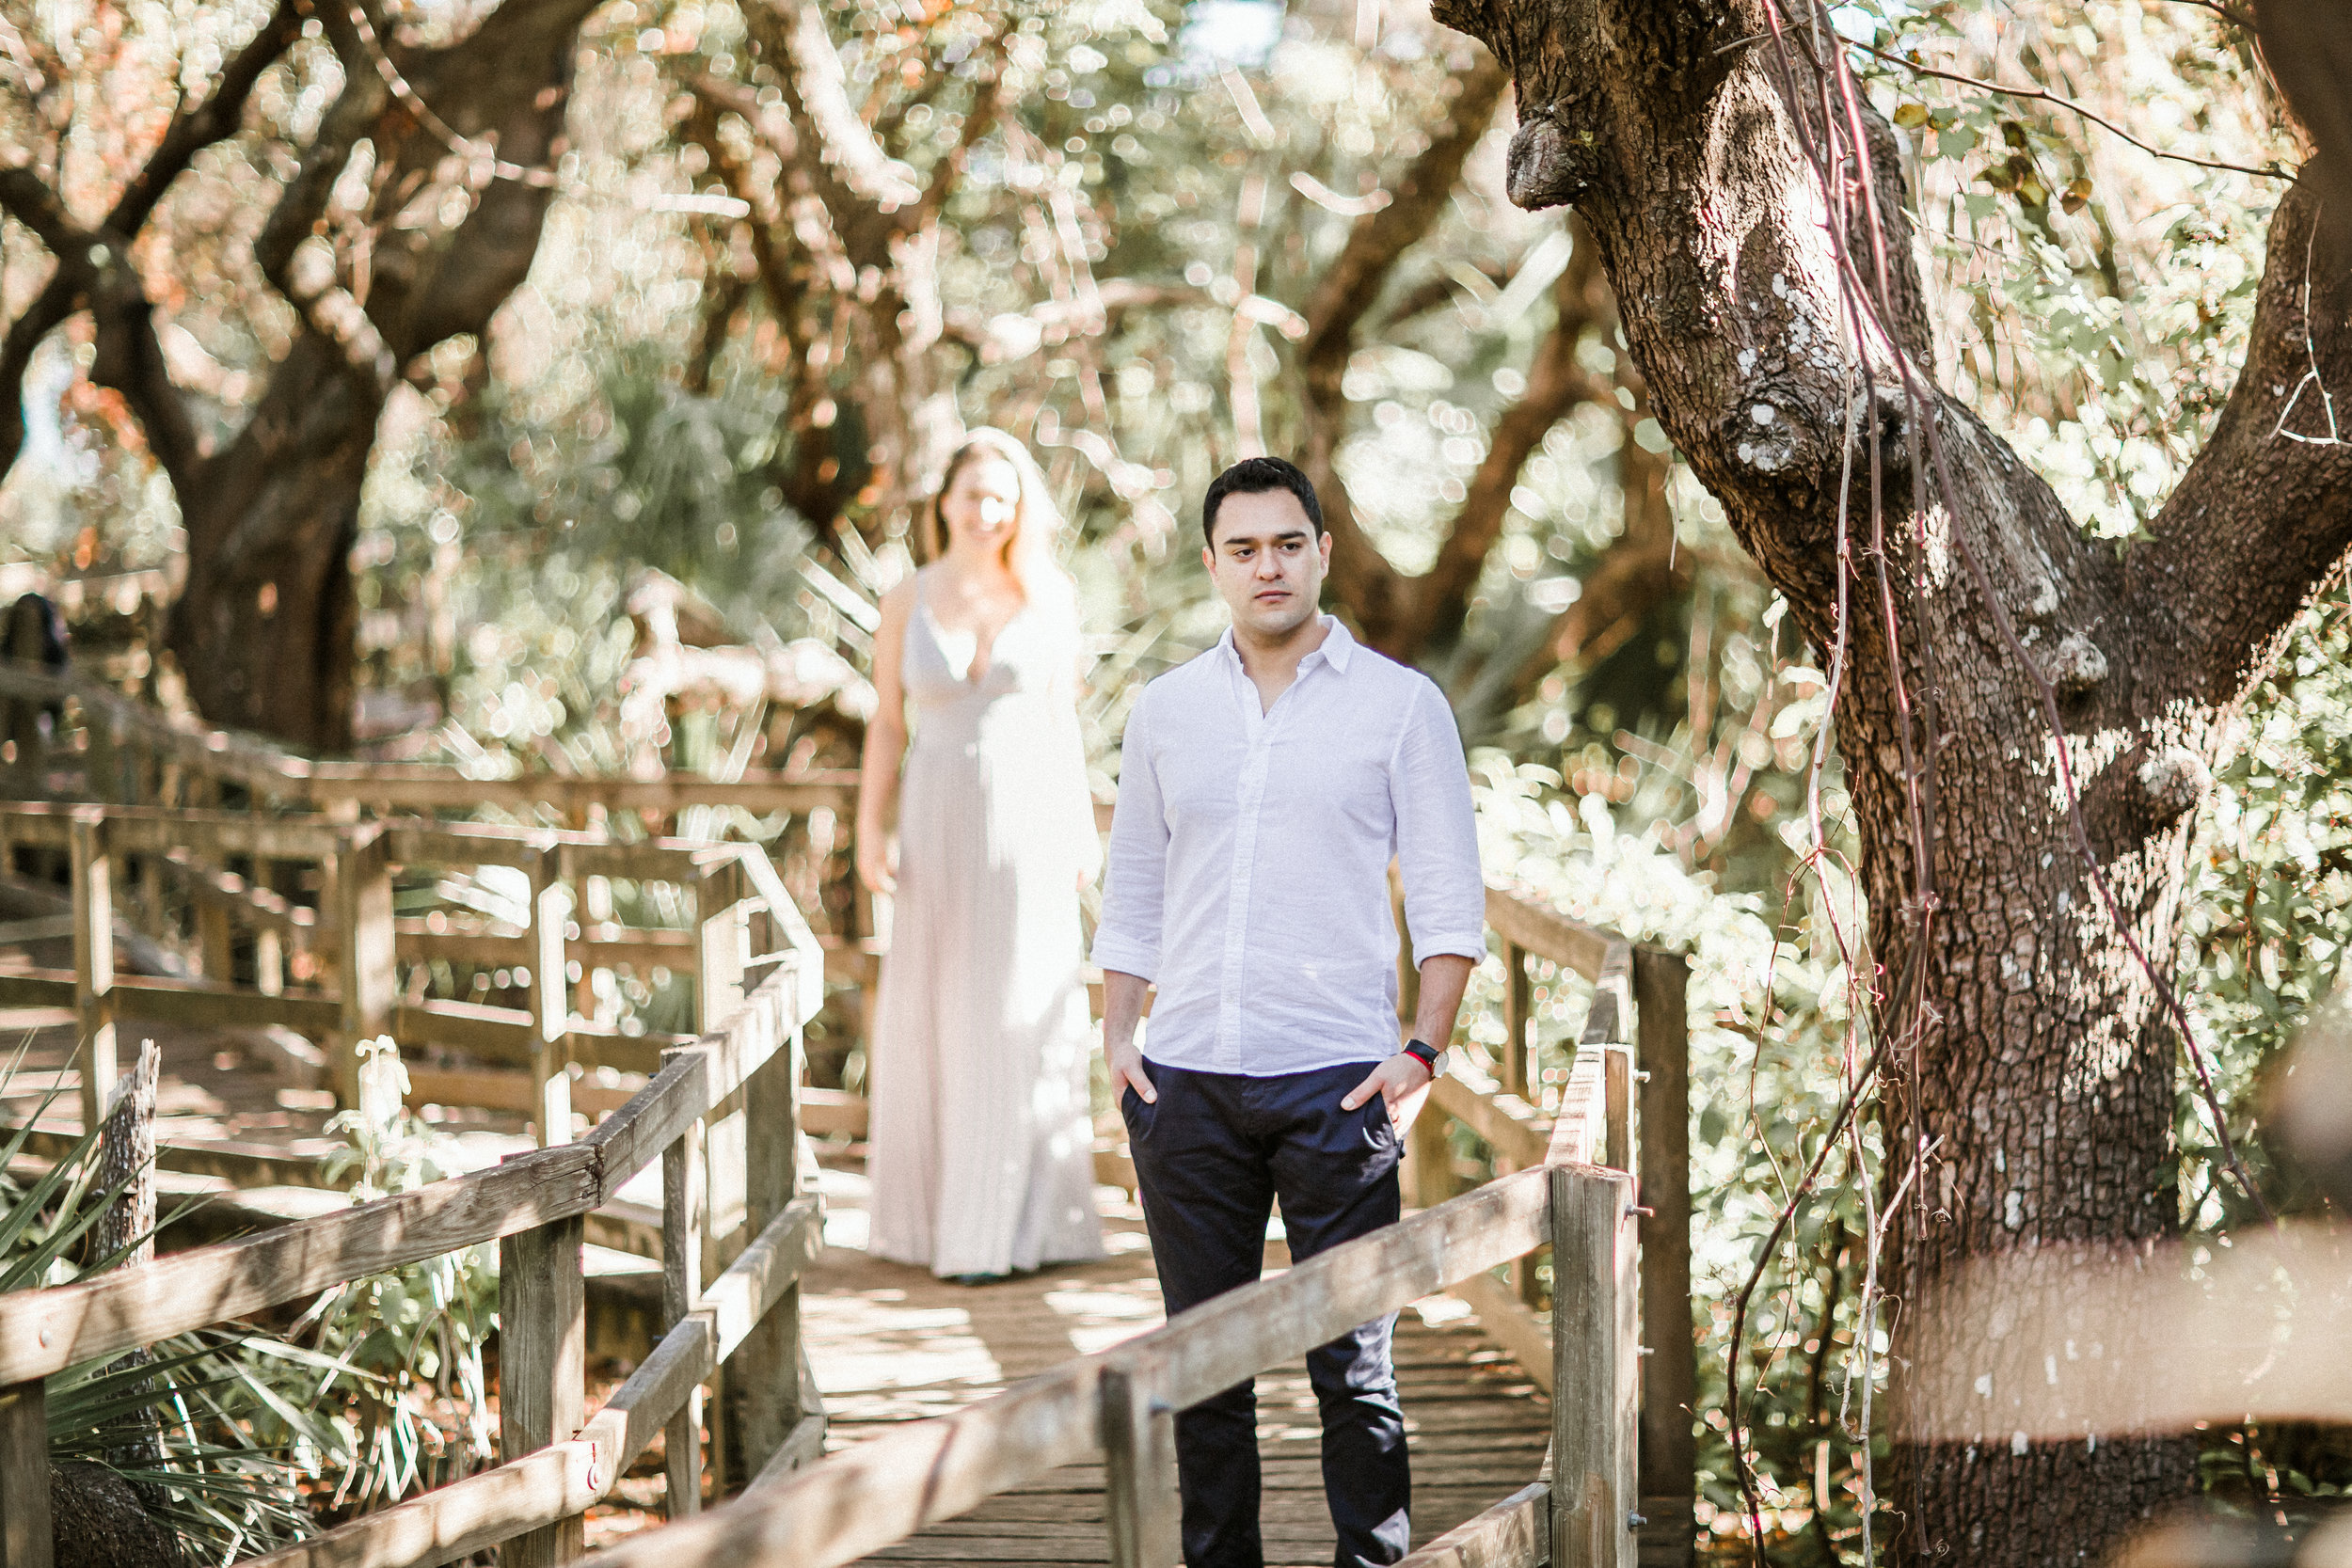 Elya + Andres - Cocoa Beach Engagement - boho bride organic eucalpytus crown mermaid forest15.jpg